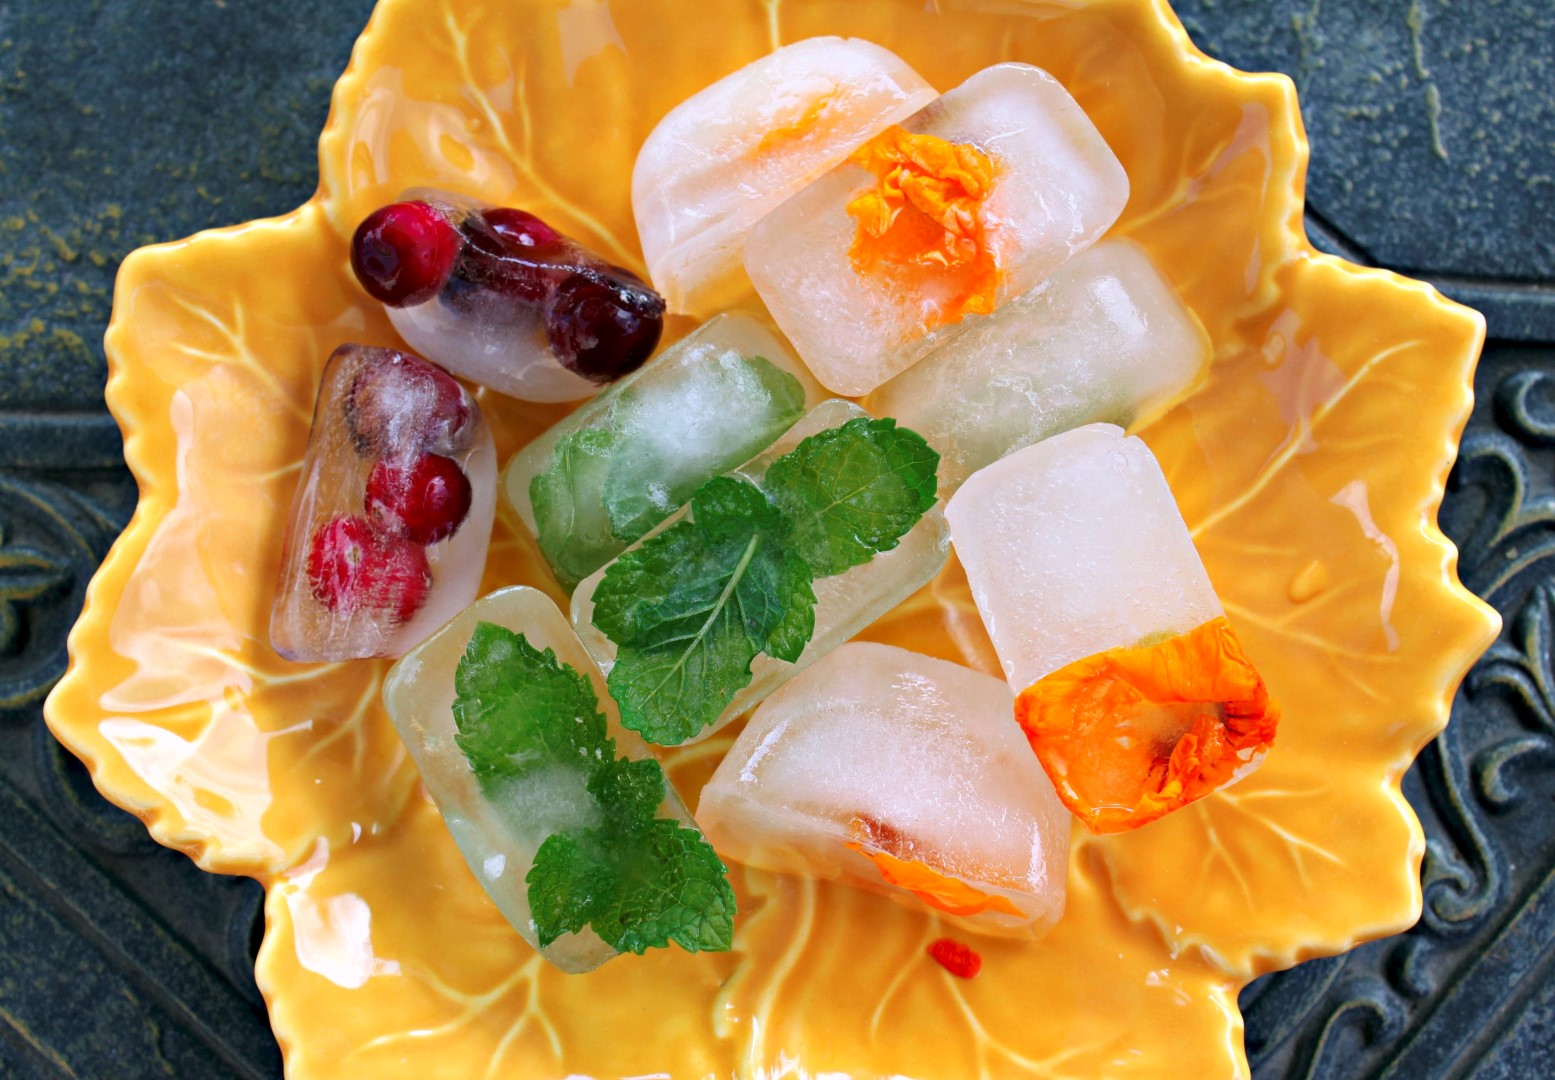 How To Make Floral Fruit And Herb Ice Cubes